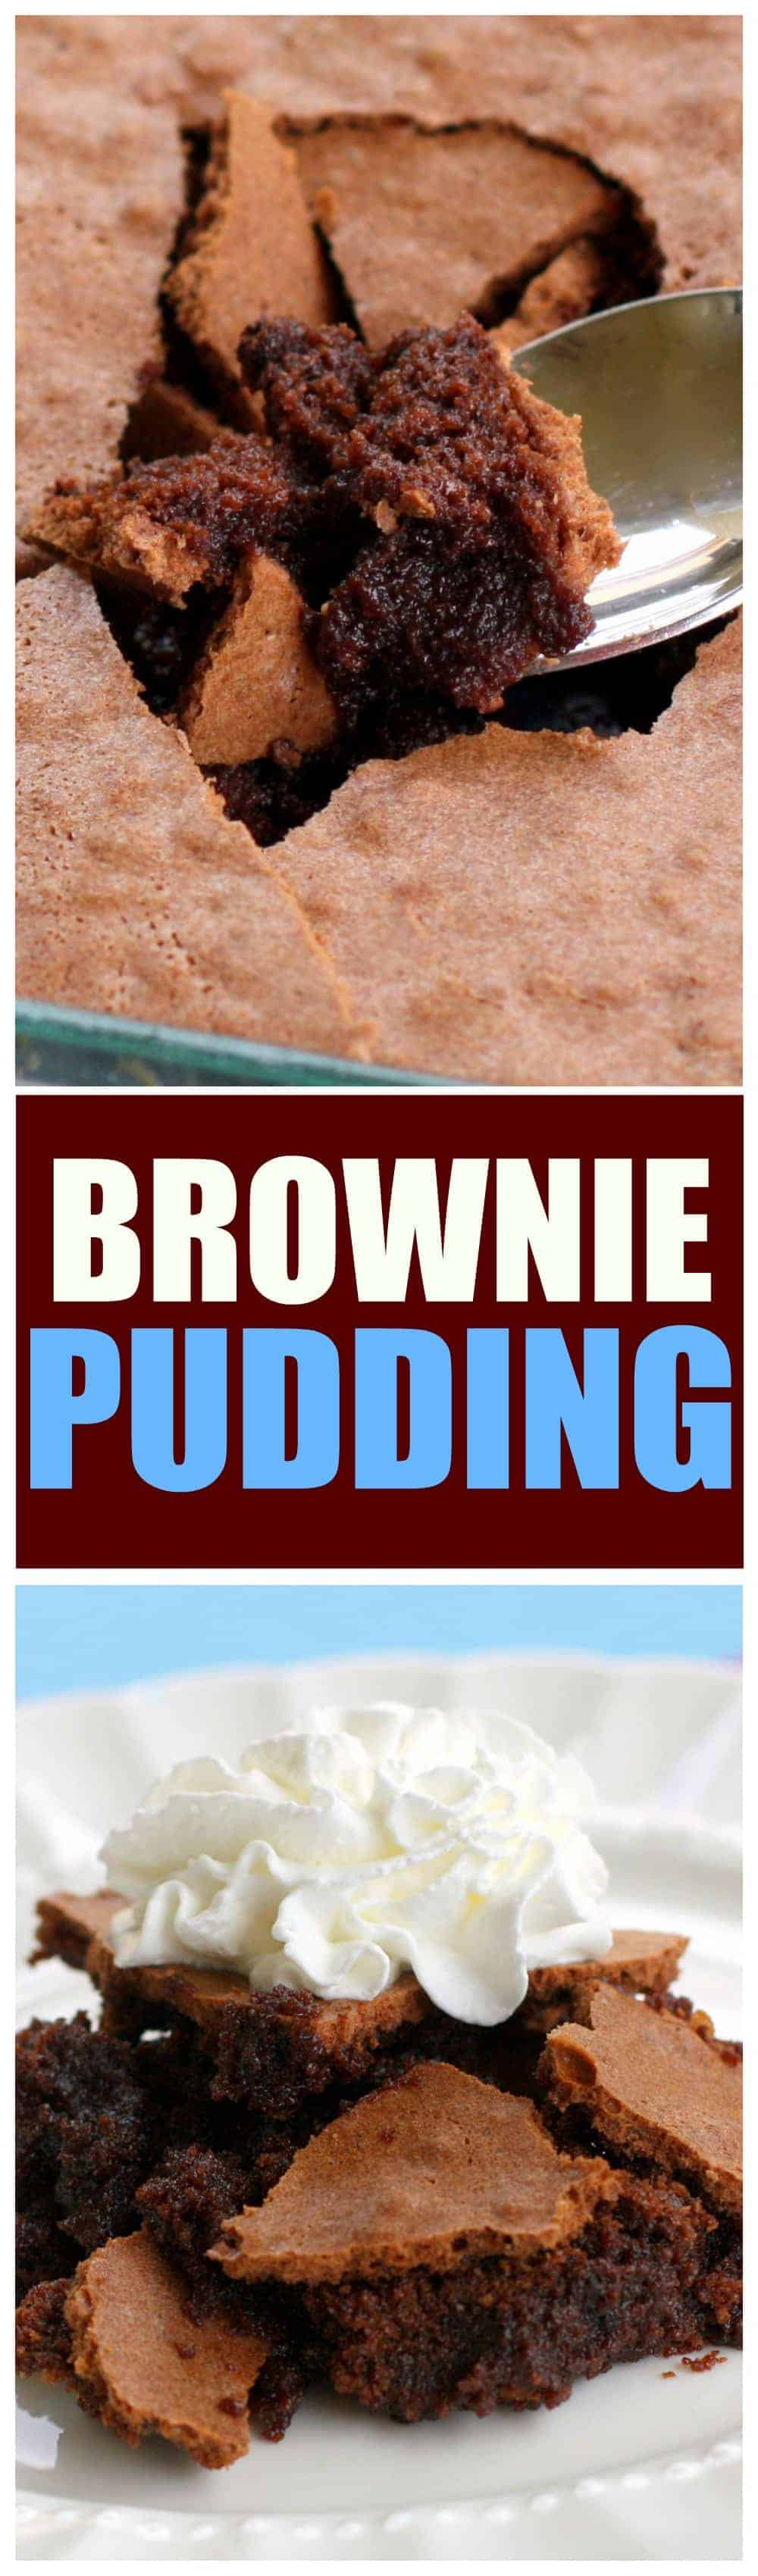 Brownie Pudding - crack the top with your spoon to get to the fudgy center! #brownie #pudding #dessert #recipe #chocolate